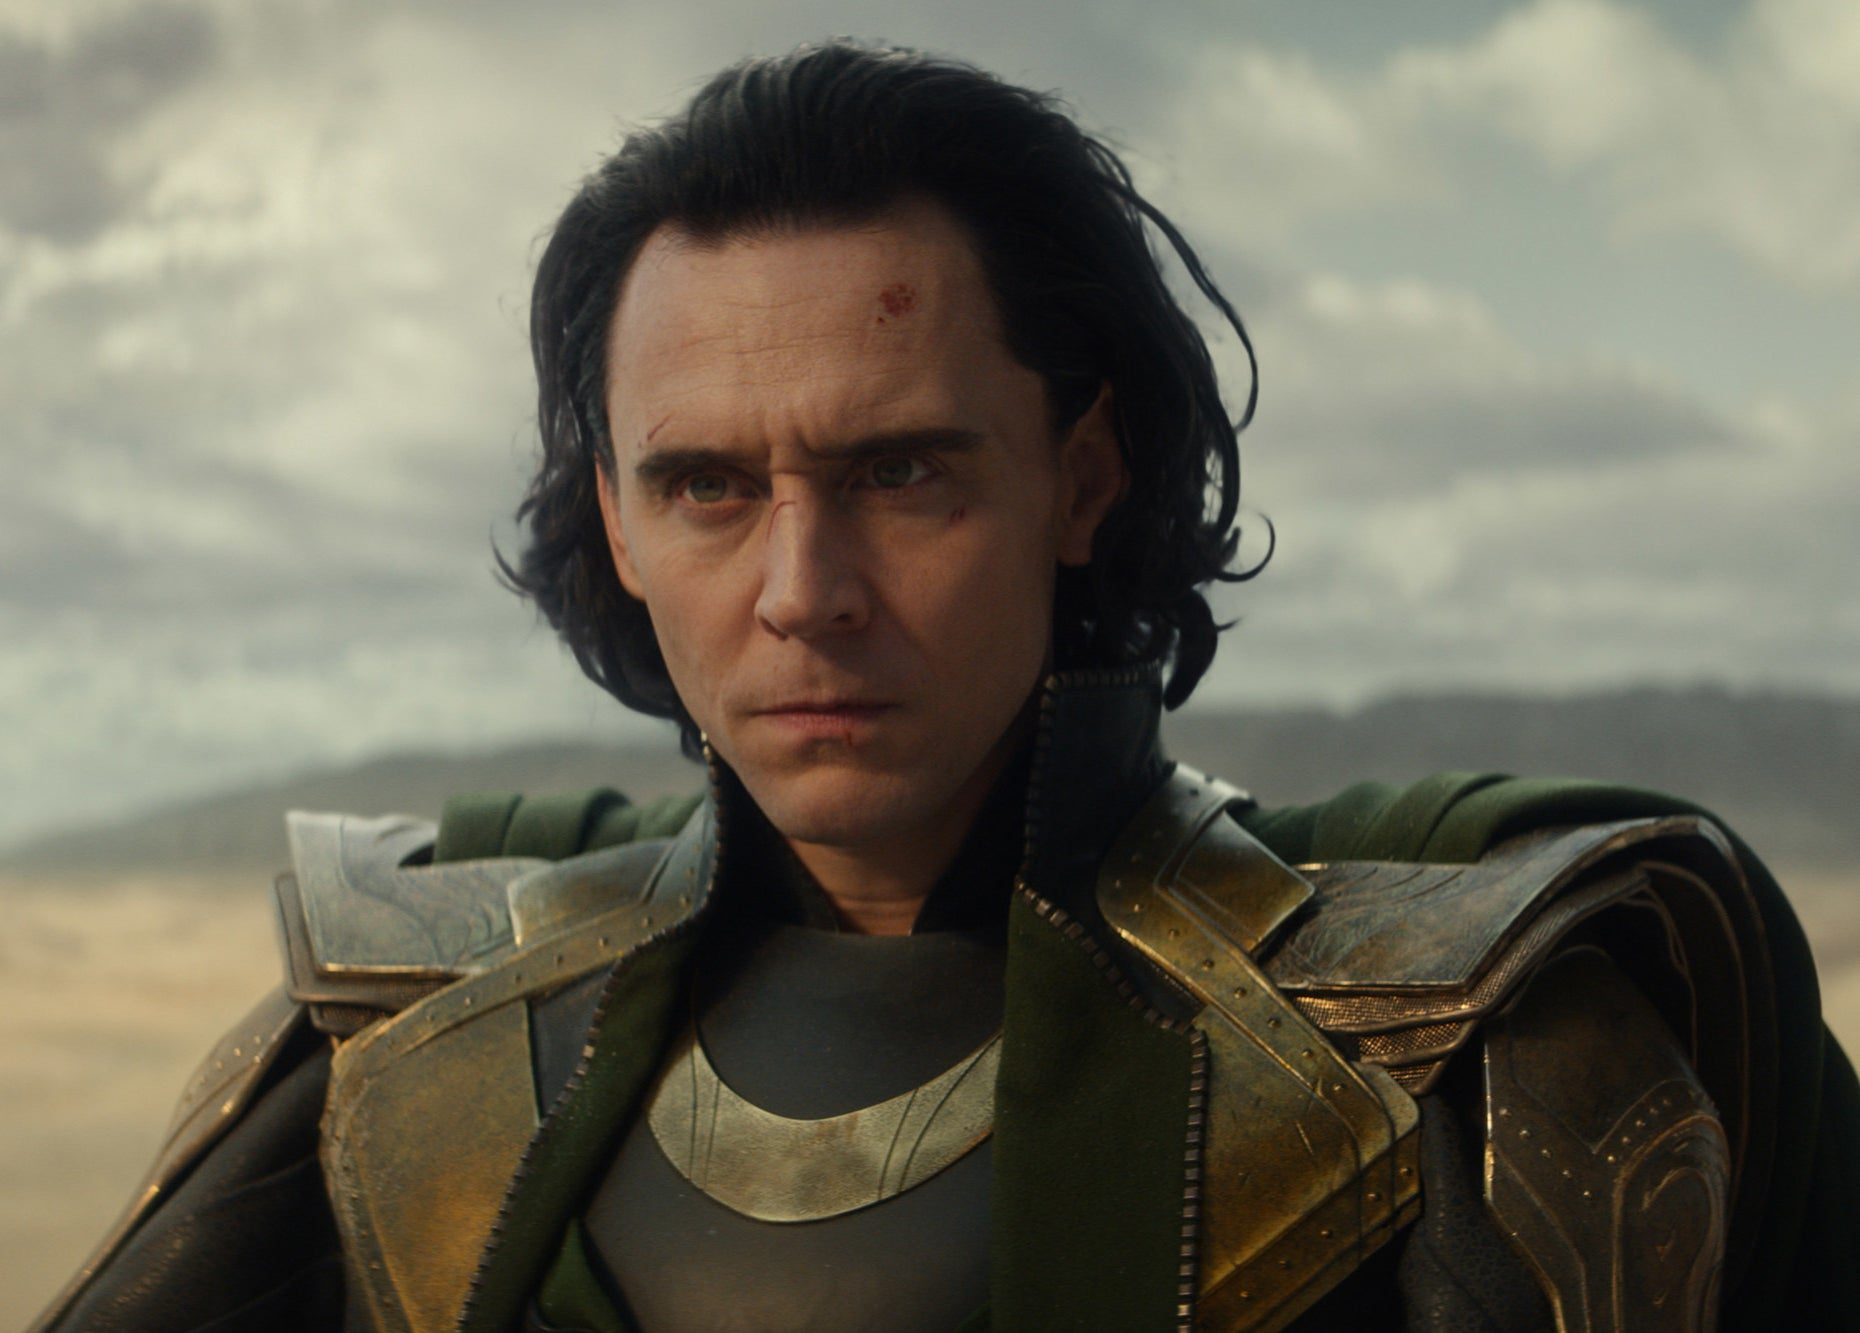 Loki looks annoyed while wearing his armour